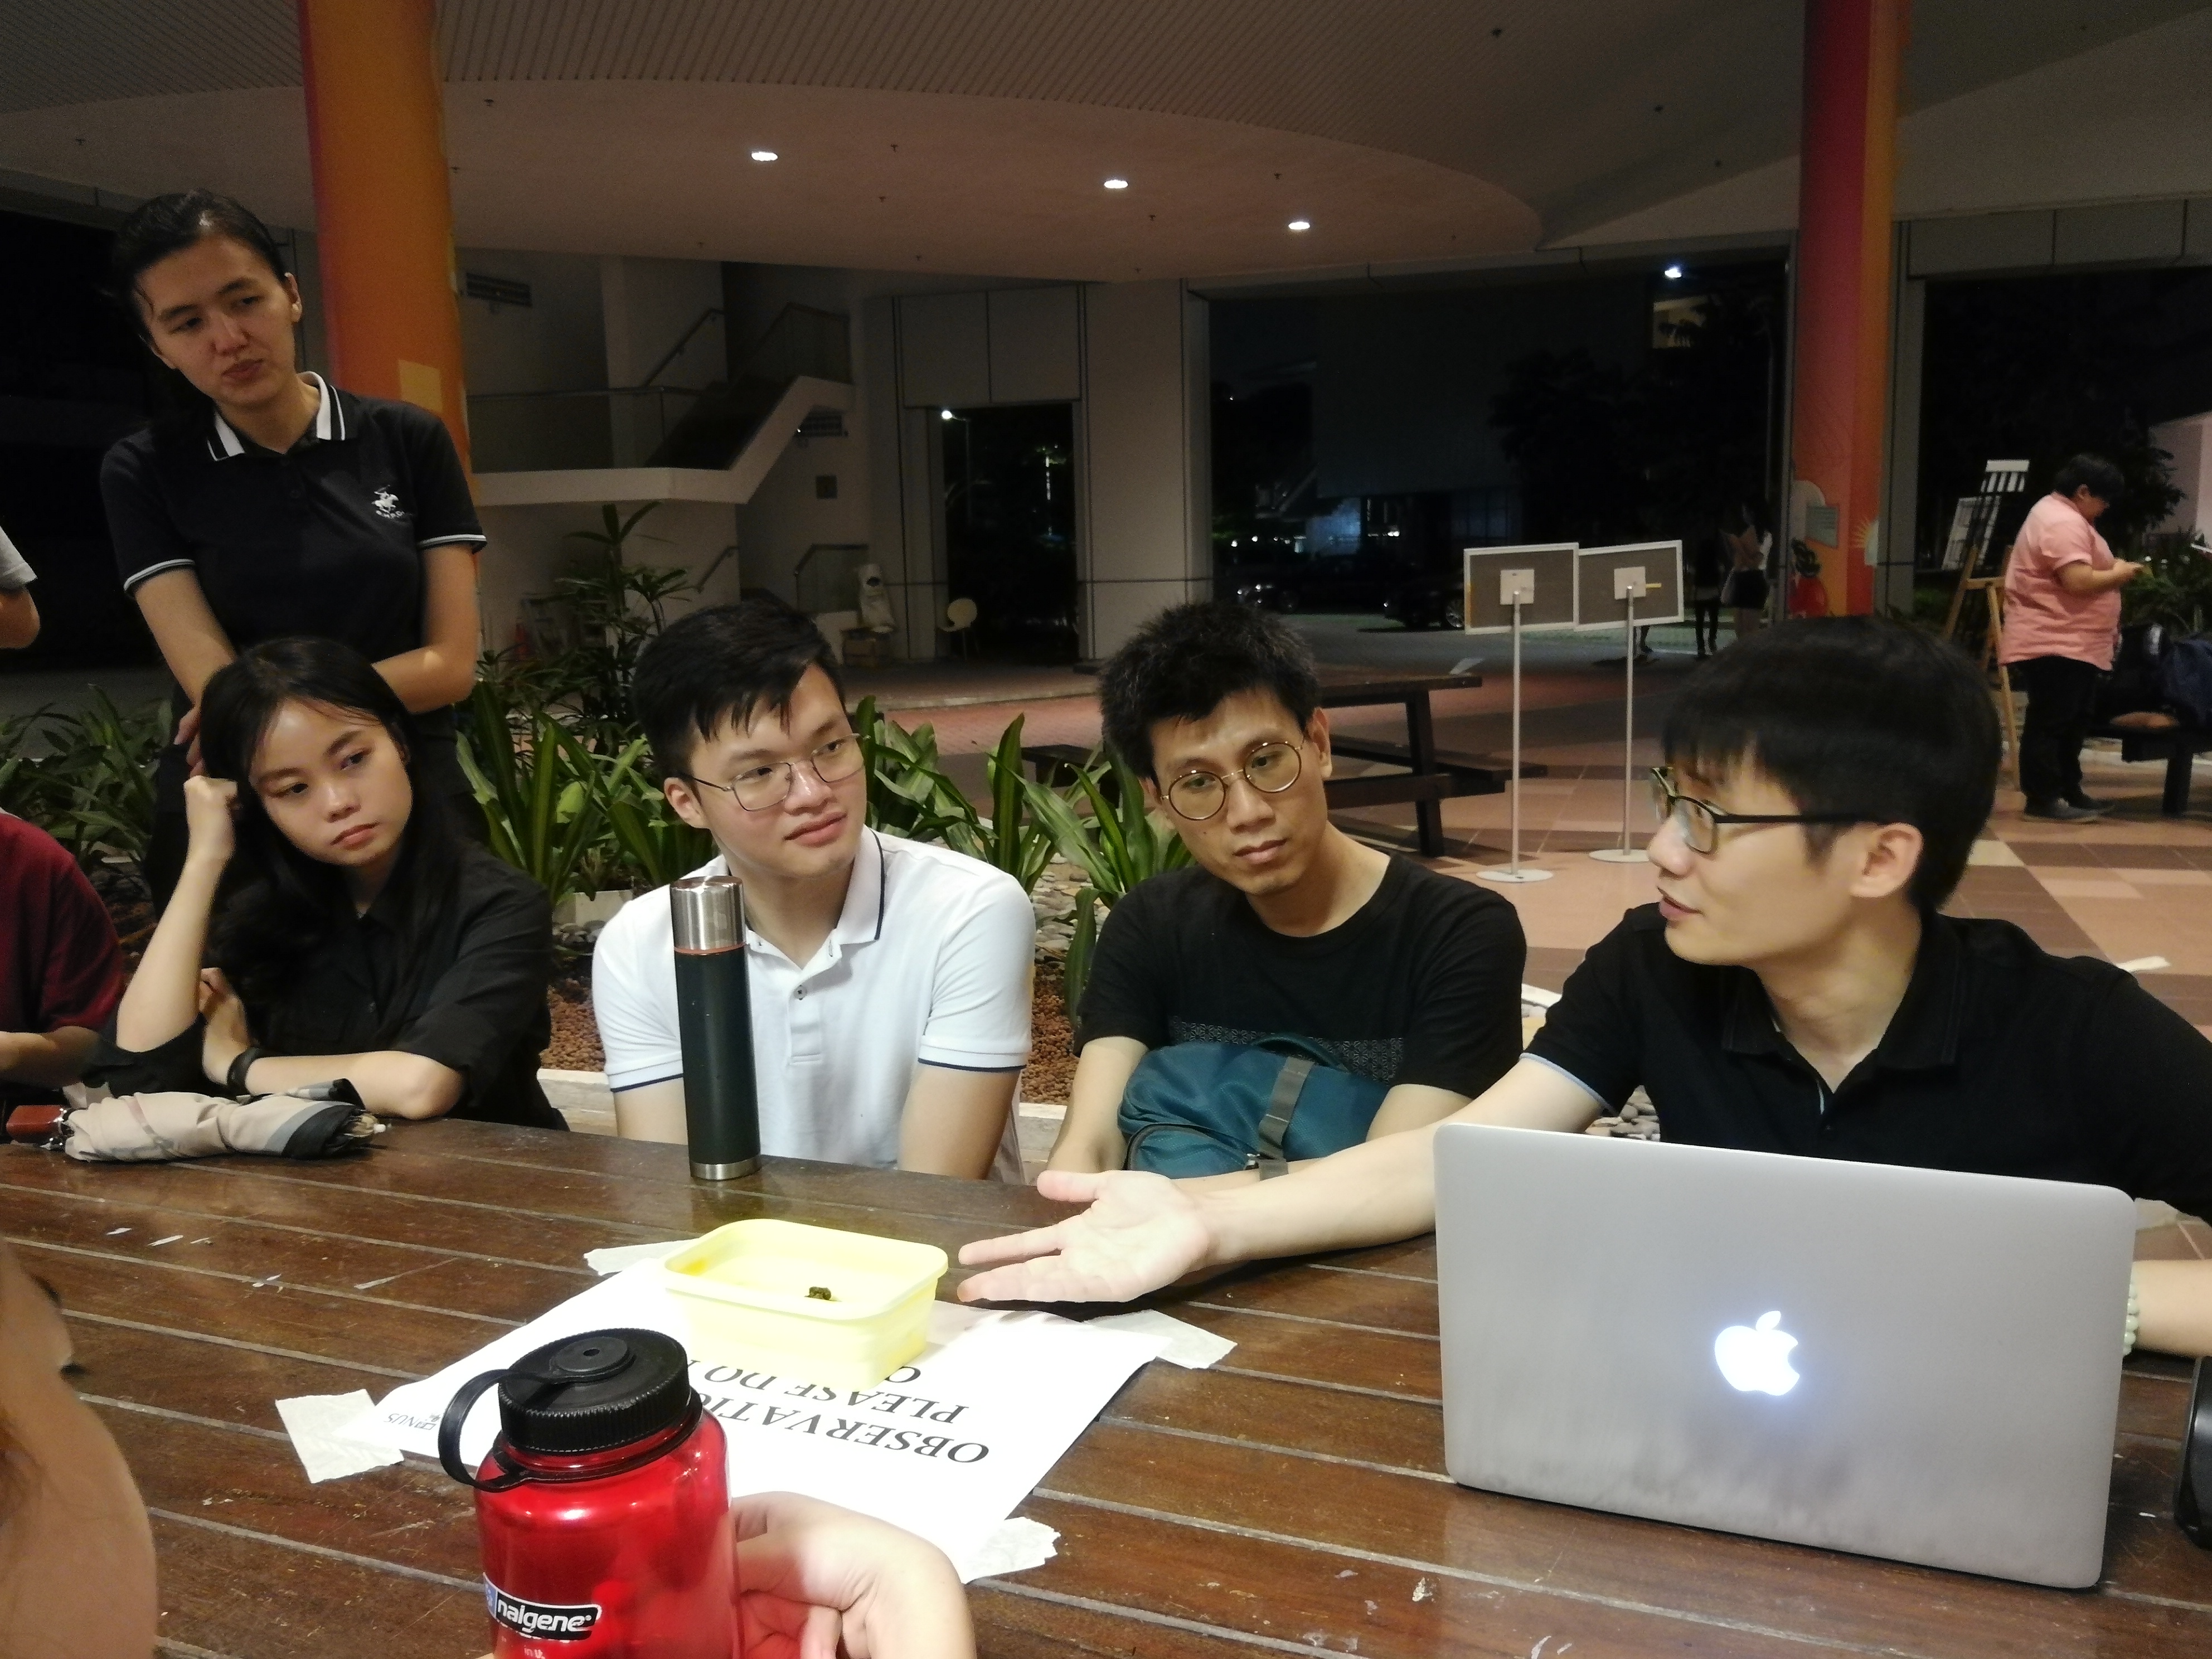 Tzu Ching senior, Brother Er Chern Han (right) shared about how one should better understand themselves and make more informed decisions than artificial intelligence.